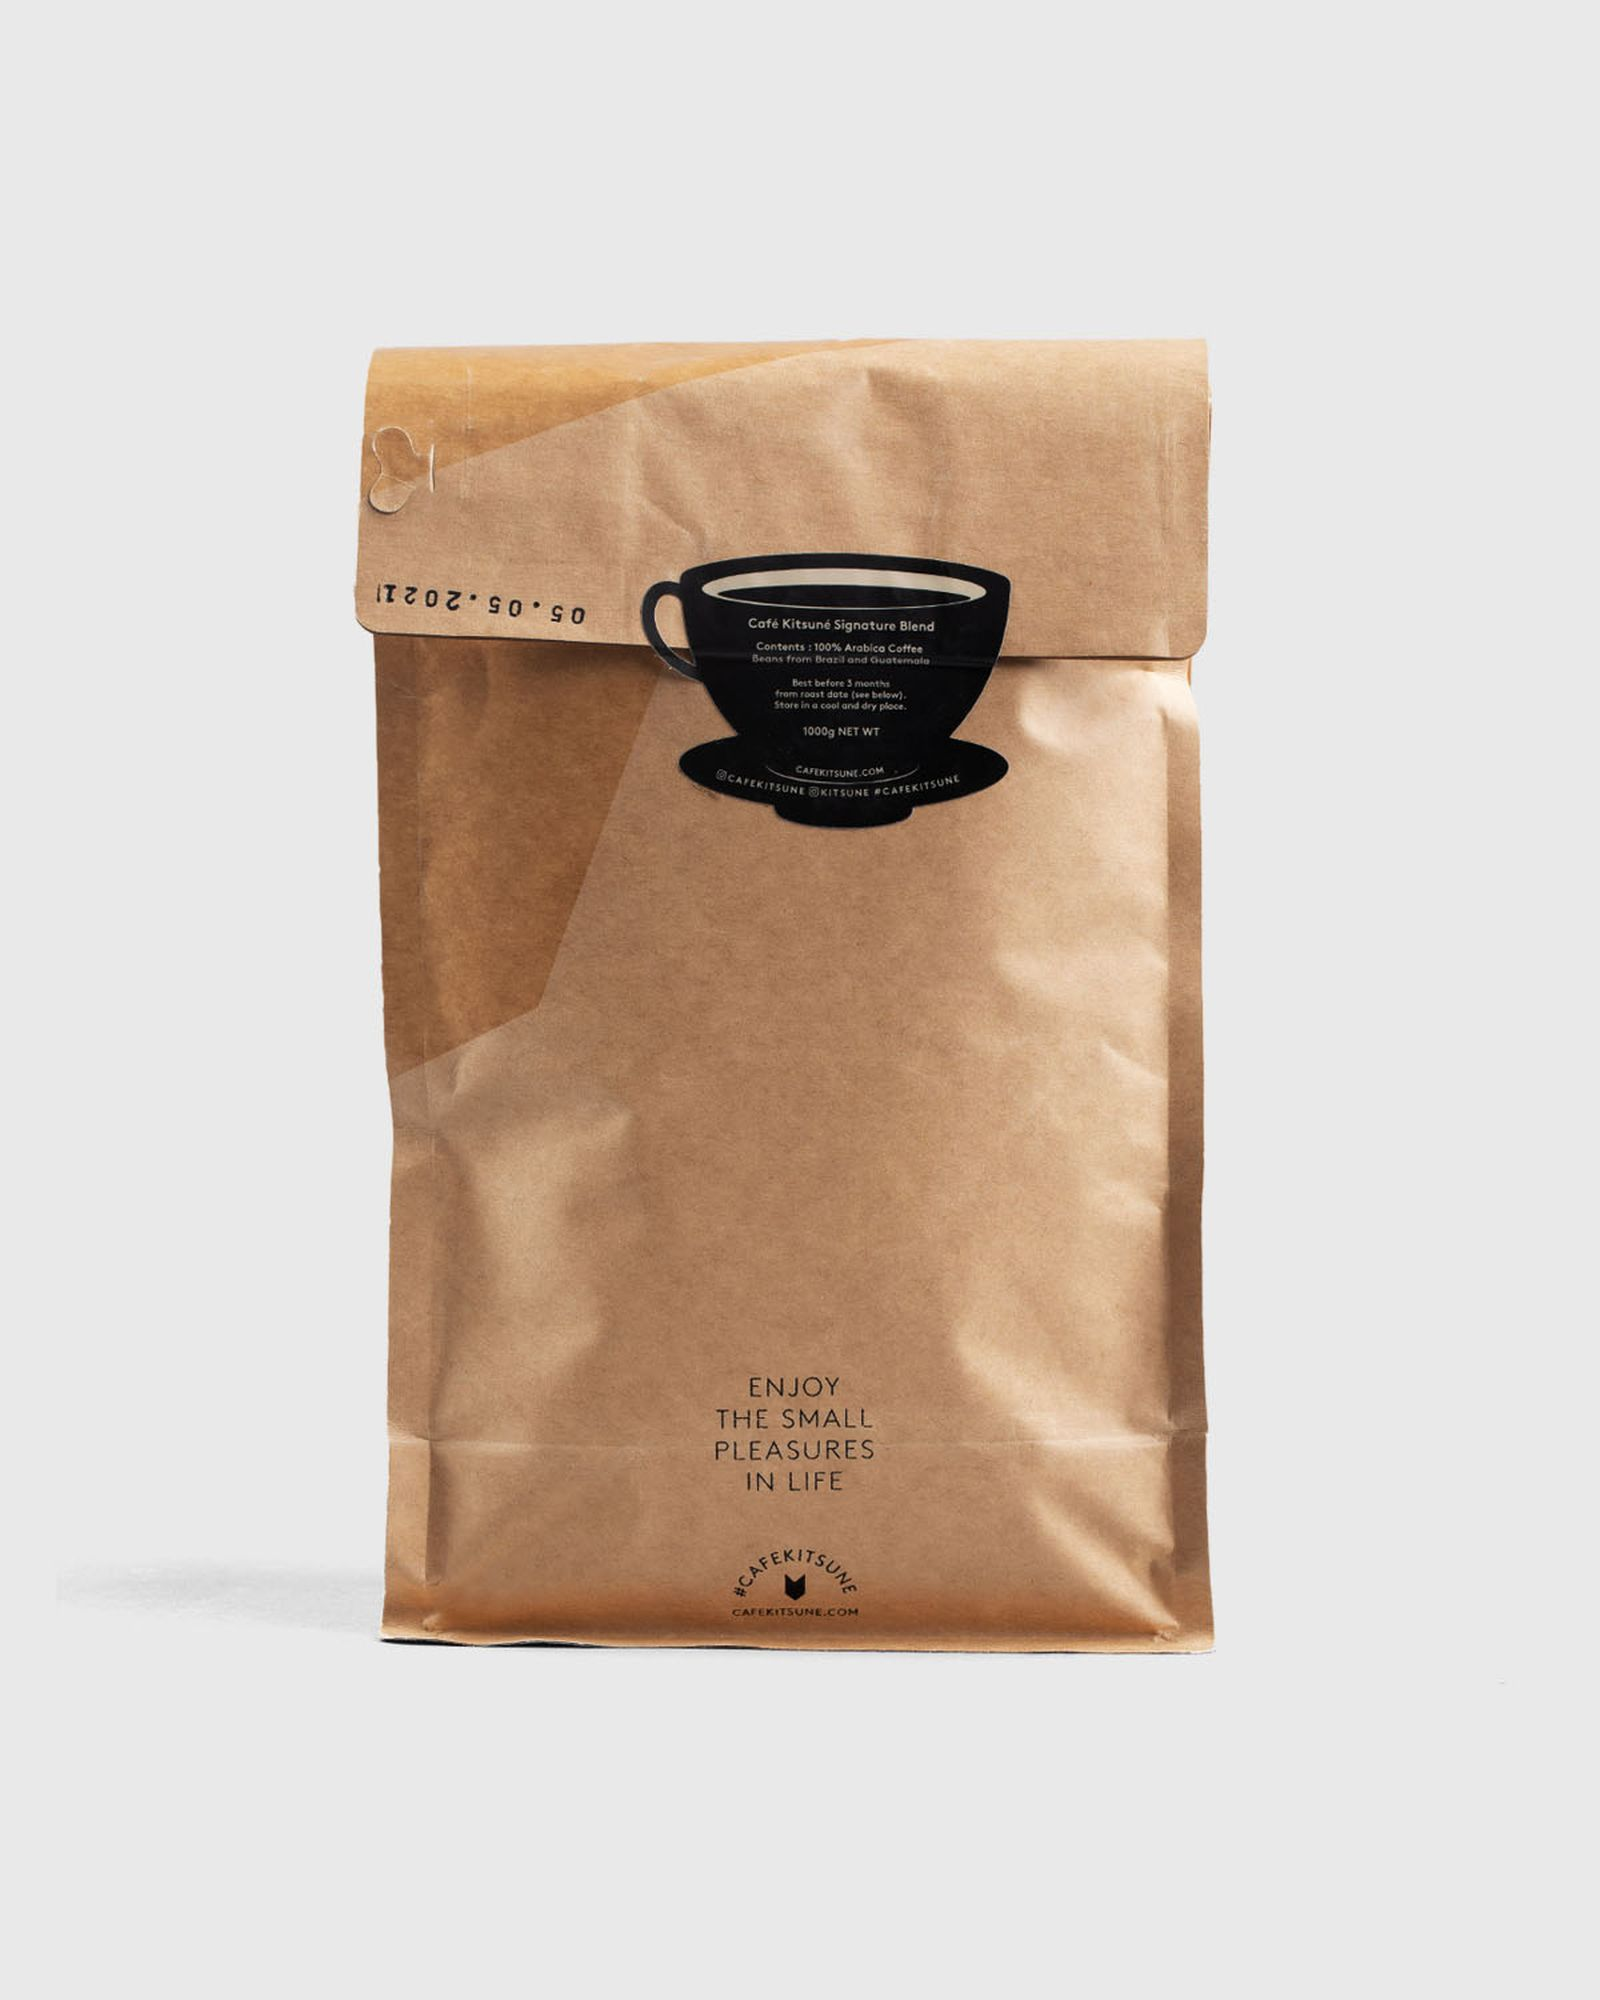 not-in-paris-releases-cafe-kitsune-coffee-02